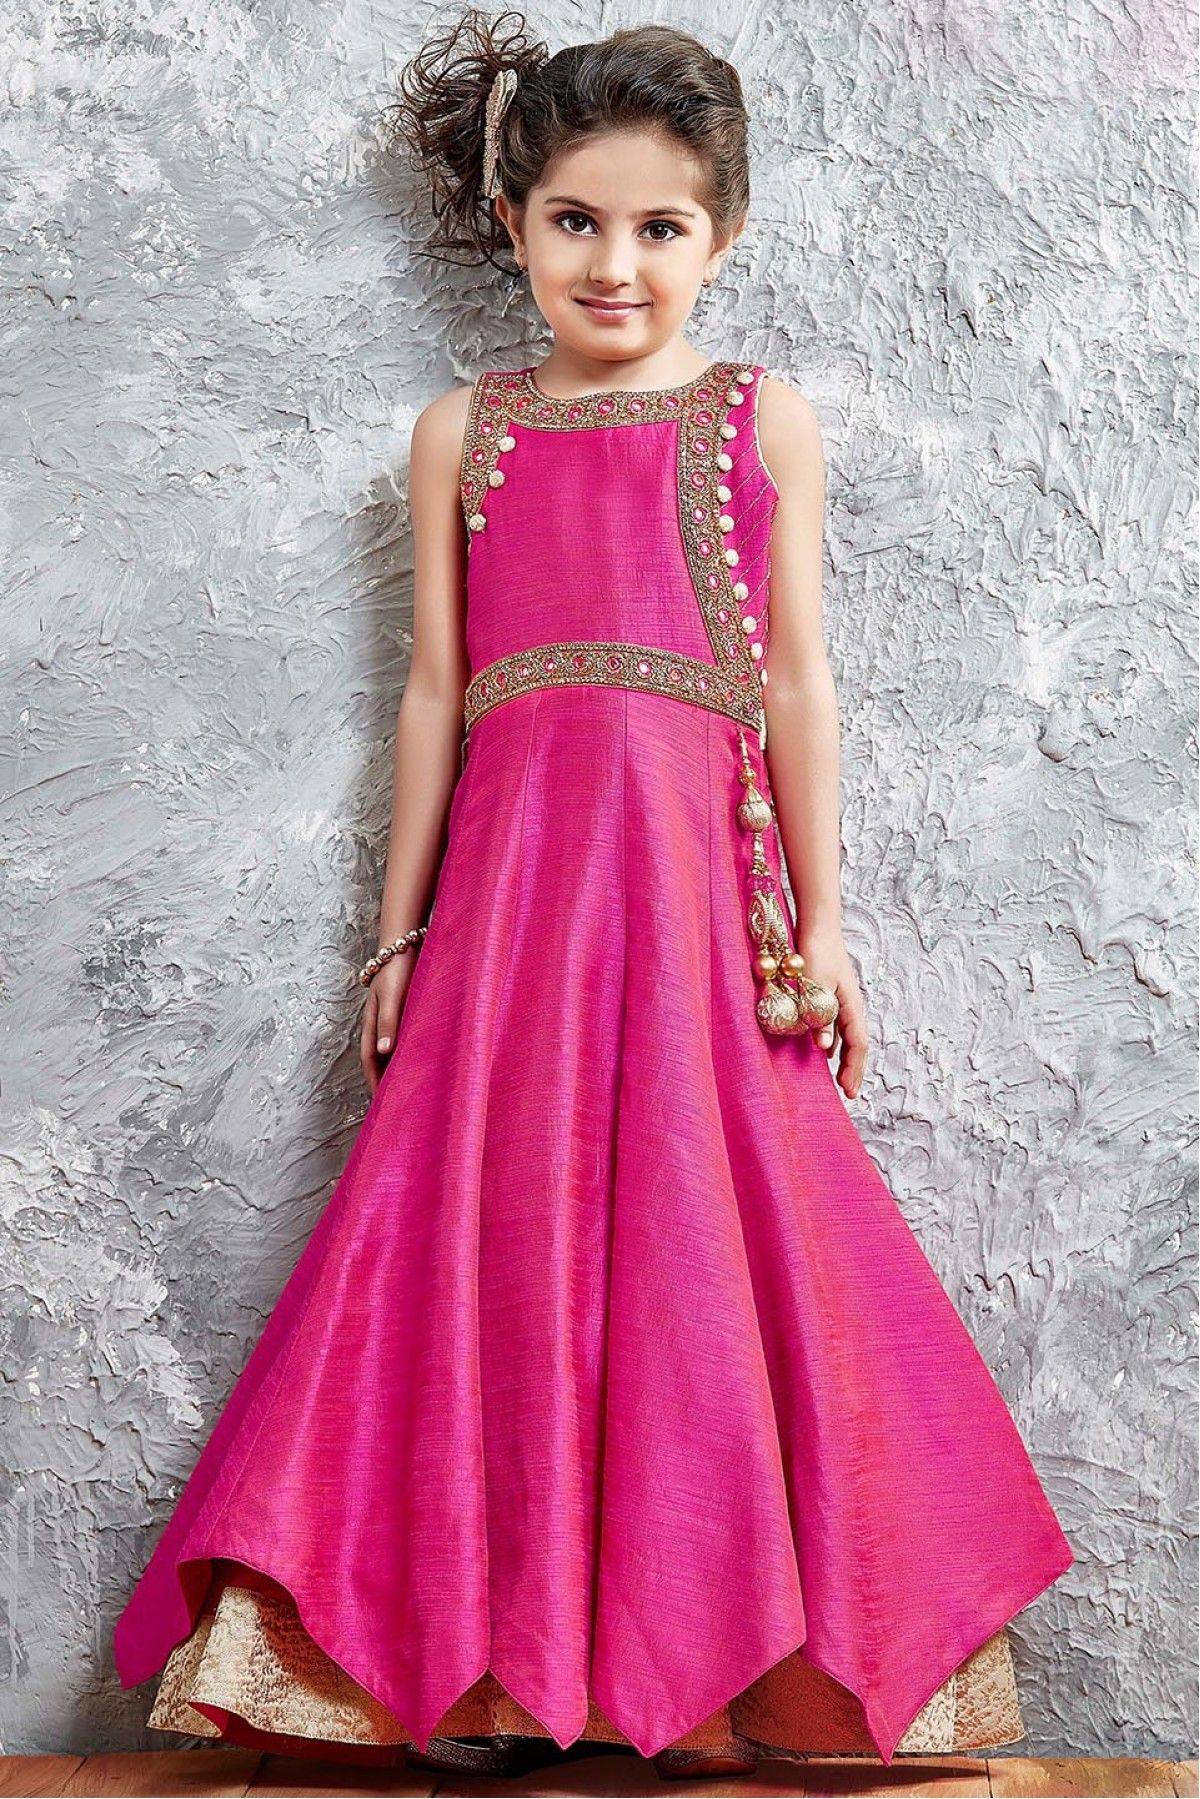 Net And Satin Party Wear Gown In Red Colour | Red color, Party wear ...